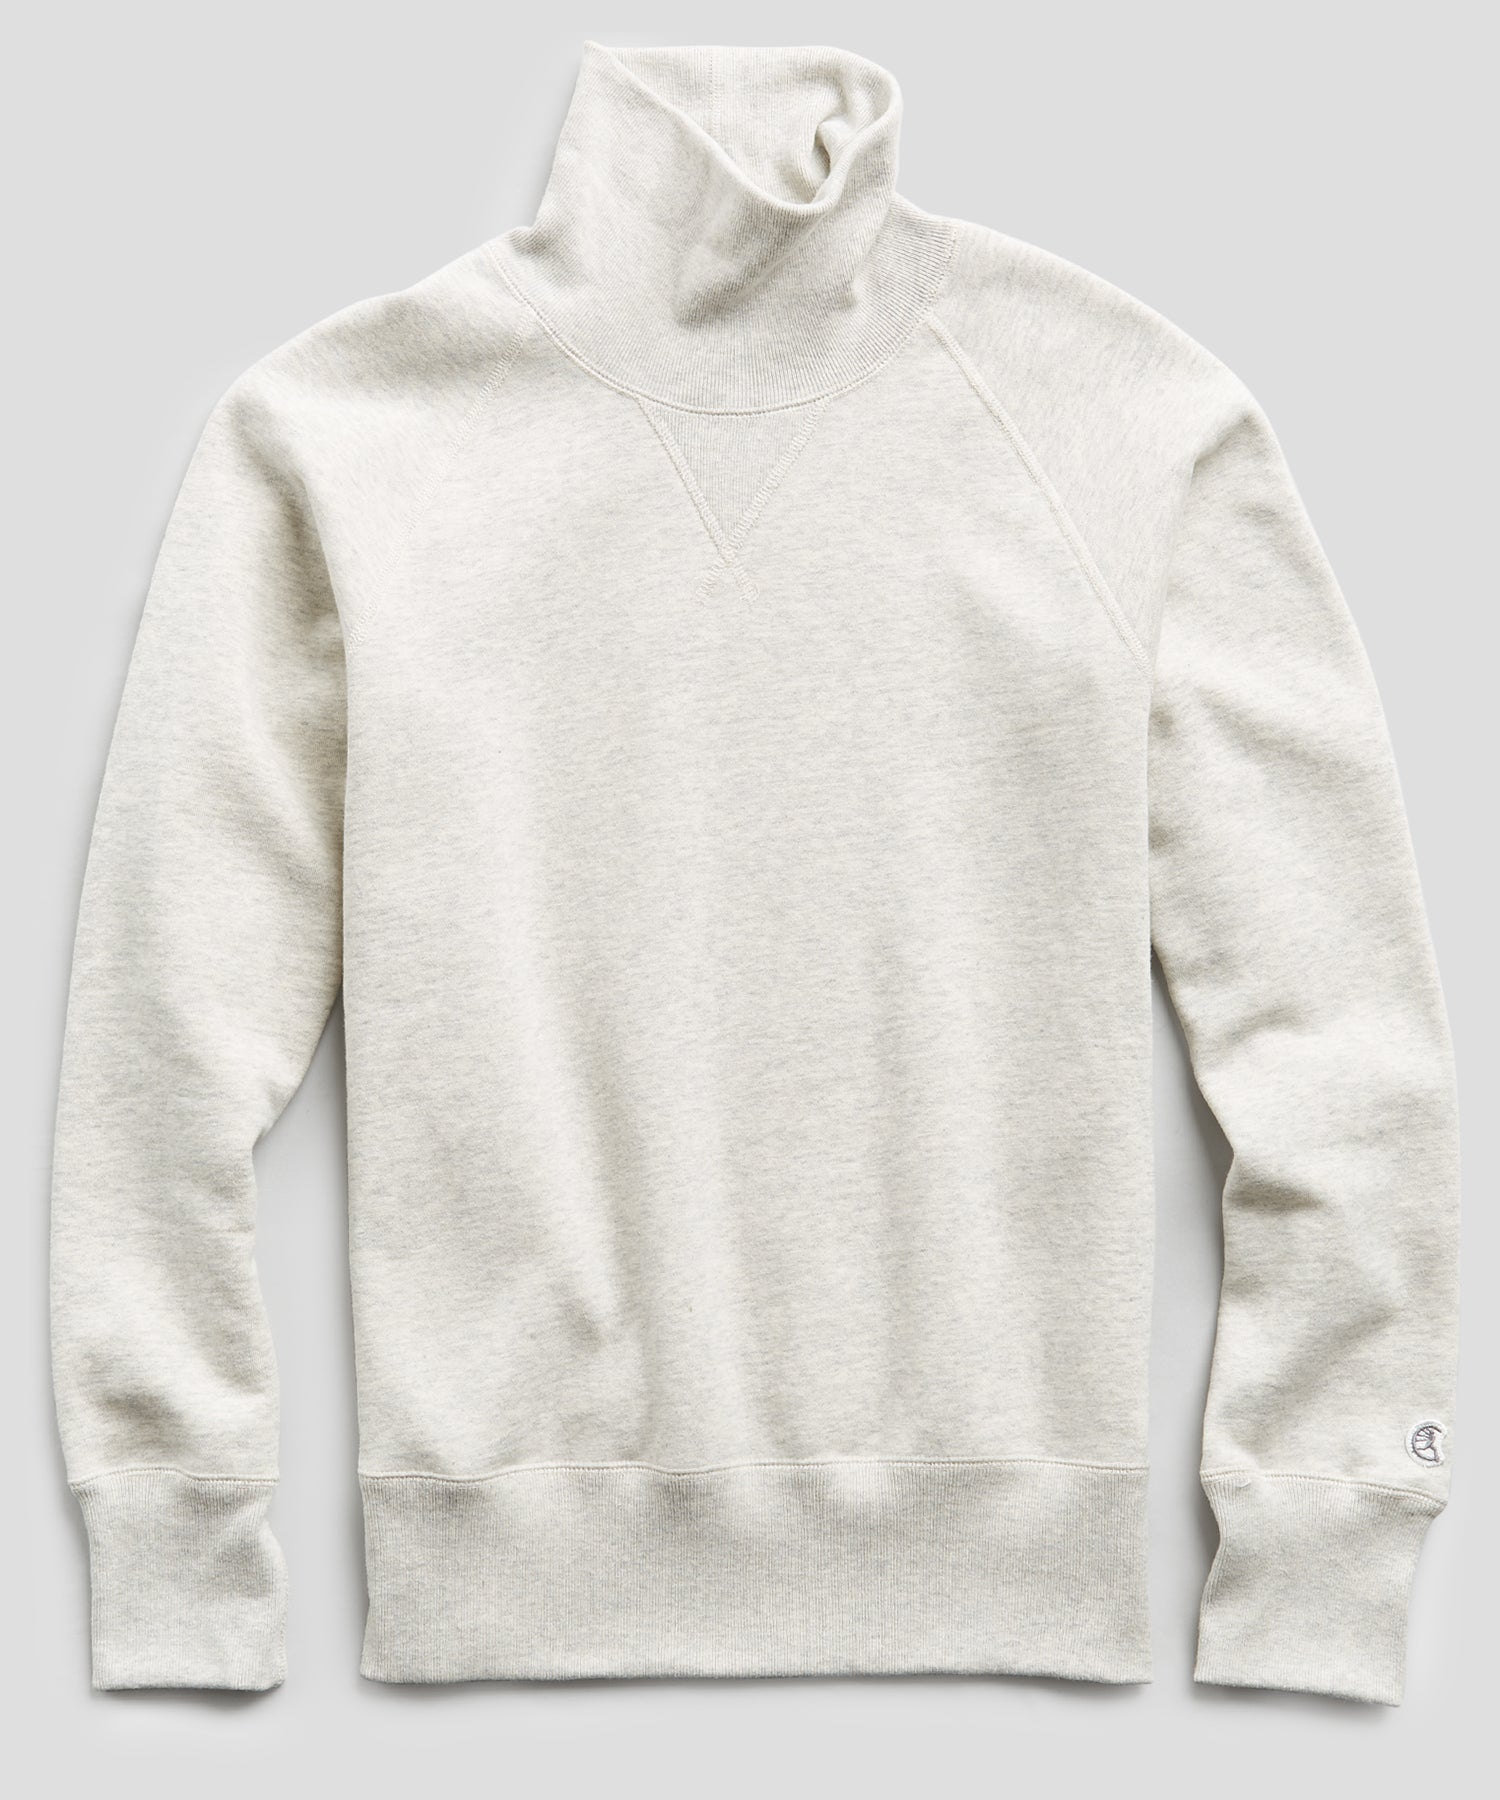 Heavyweight Turtleneck Sweatshirt in Eggshell Mix